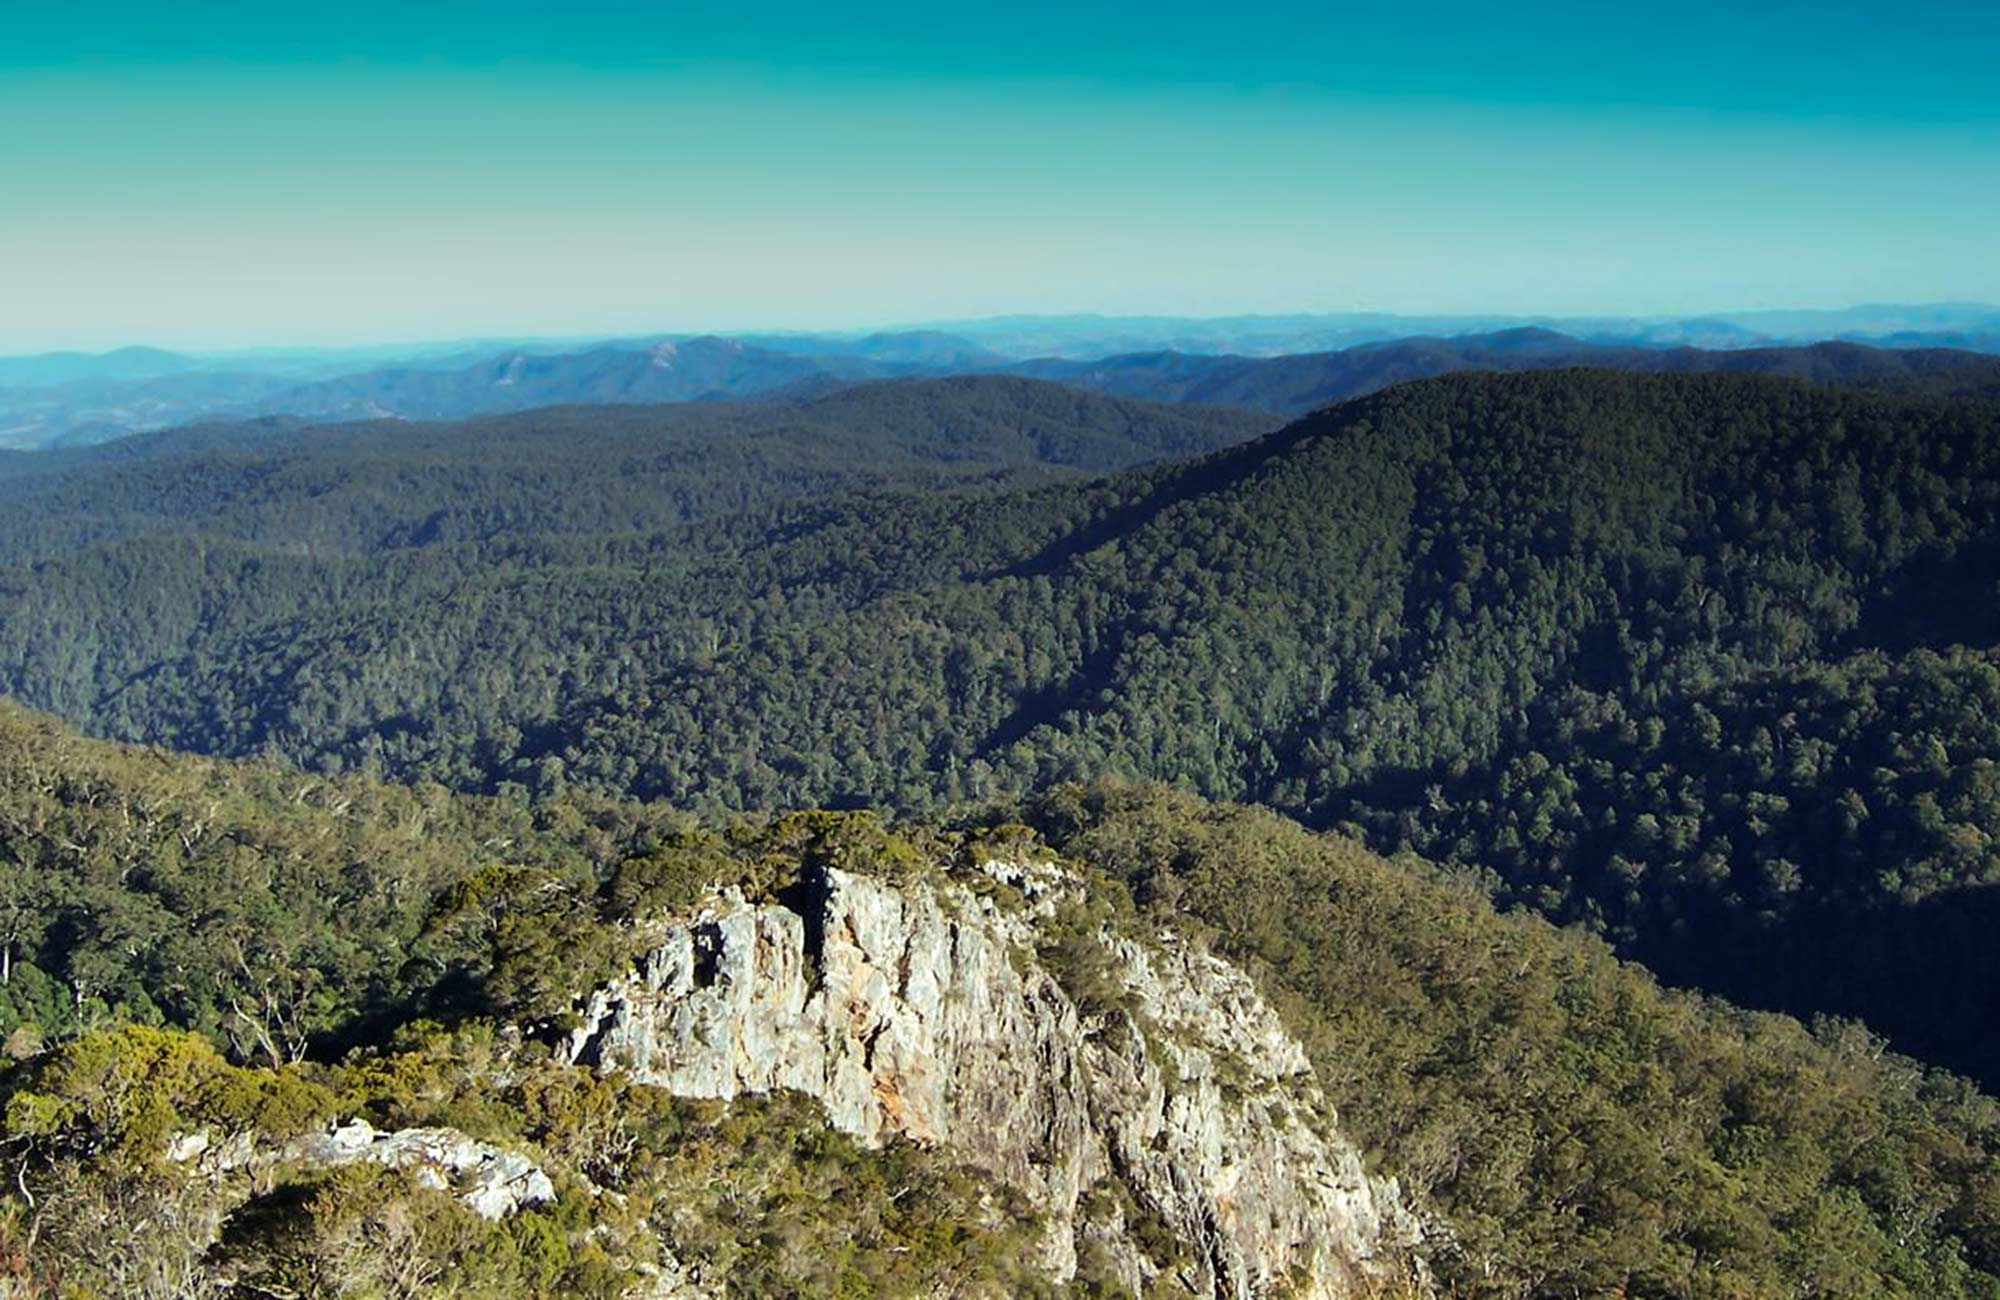 Rowleys Rock lookout, Tapin Tops National Park. Photo: Kevin Carter/NSW Government